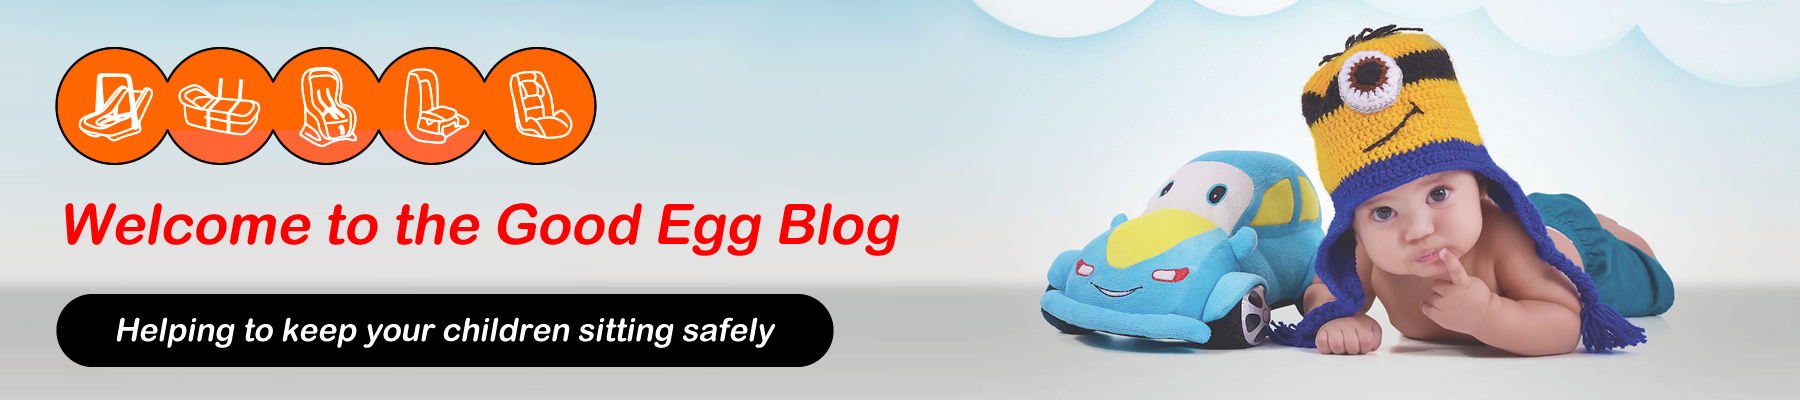 The Good Egg Car Safety Blog